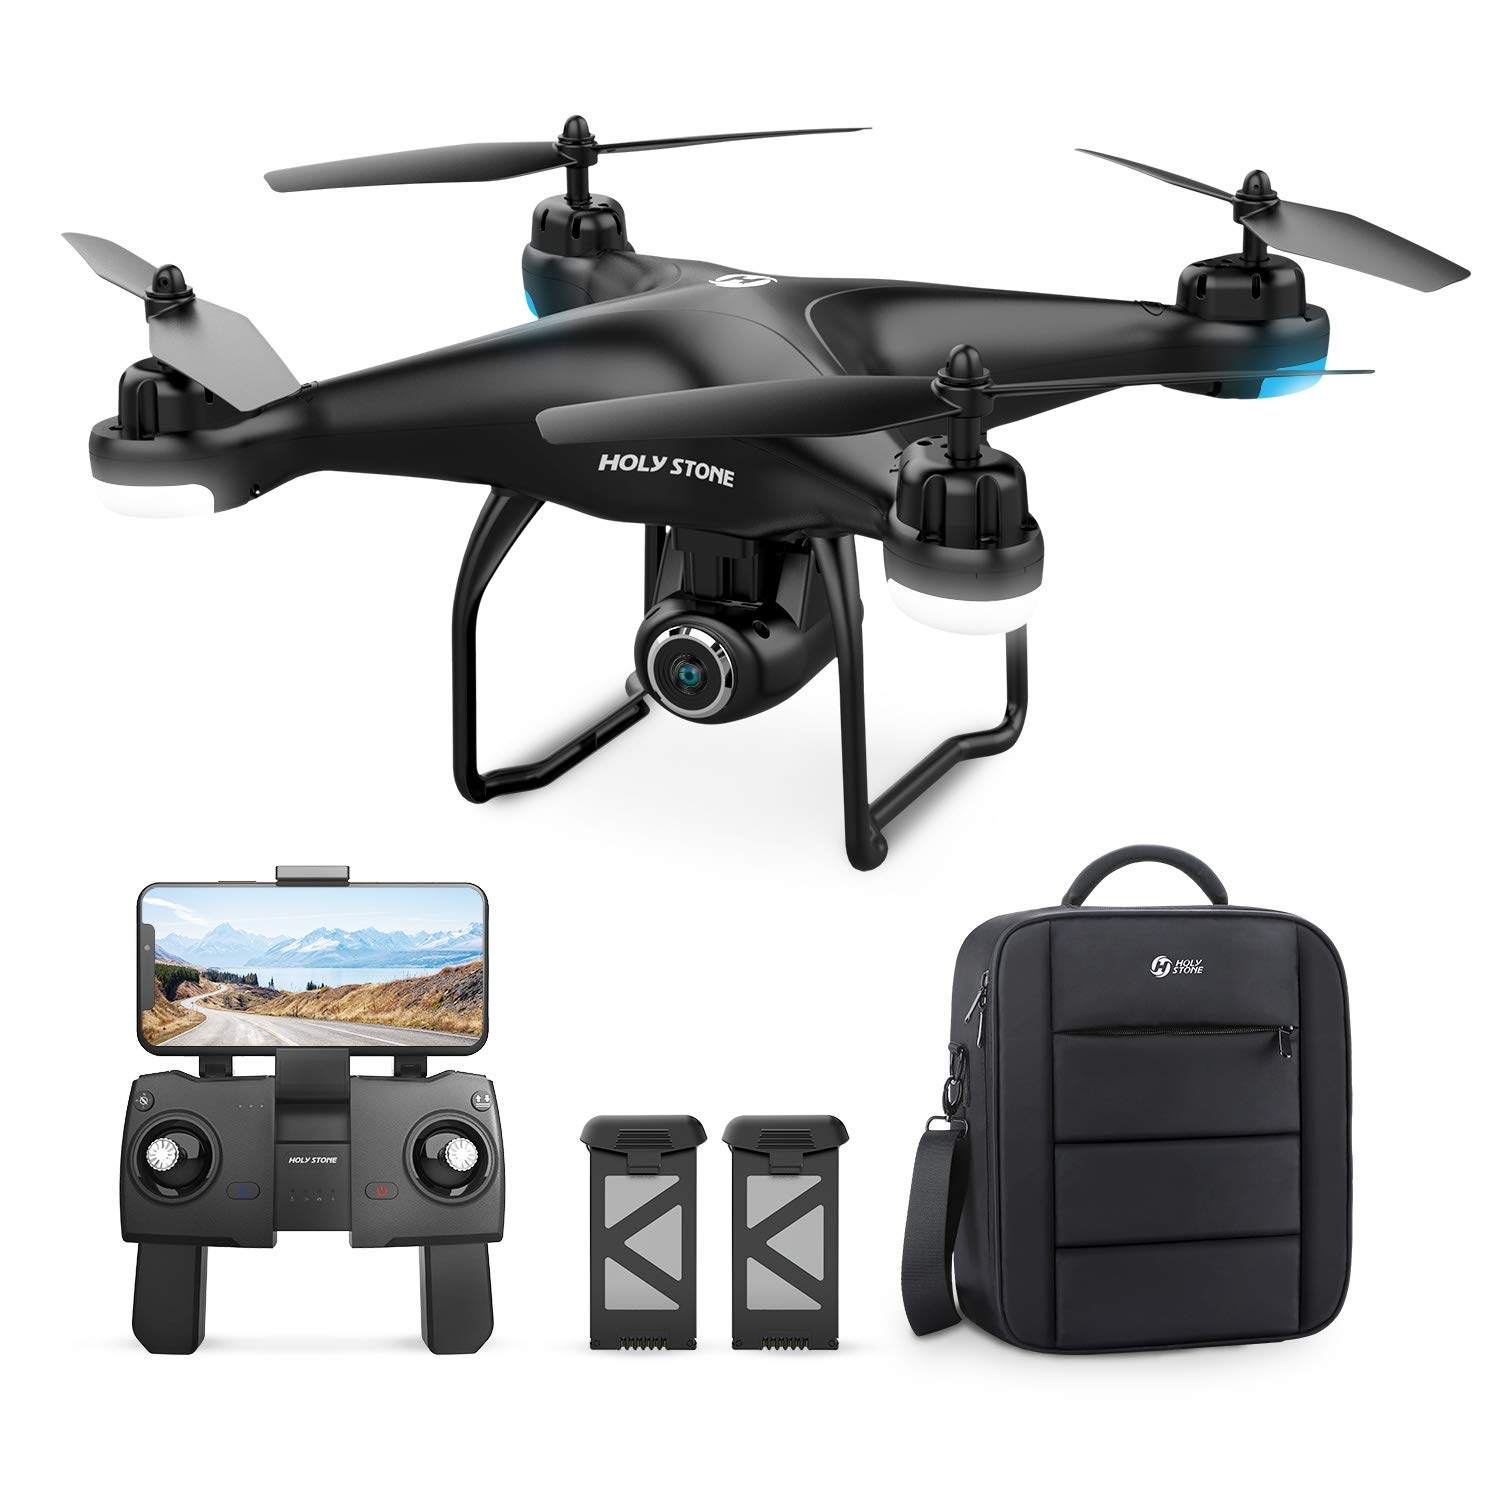 Holy Stone HS120D GPS Drone with Camera for Adults 1080p HD FPV, Quadcotper with Auto Return Home, Follow Me, Altitude Hold, Tap Fly Functions, Includes 2 Batteries and Carrying Backpack by Holy Stone